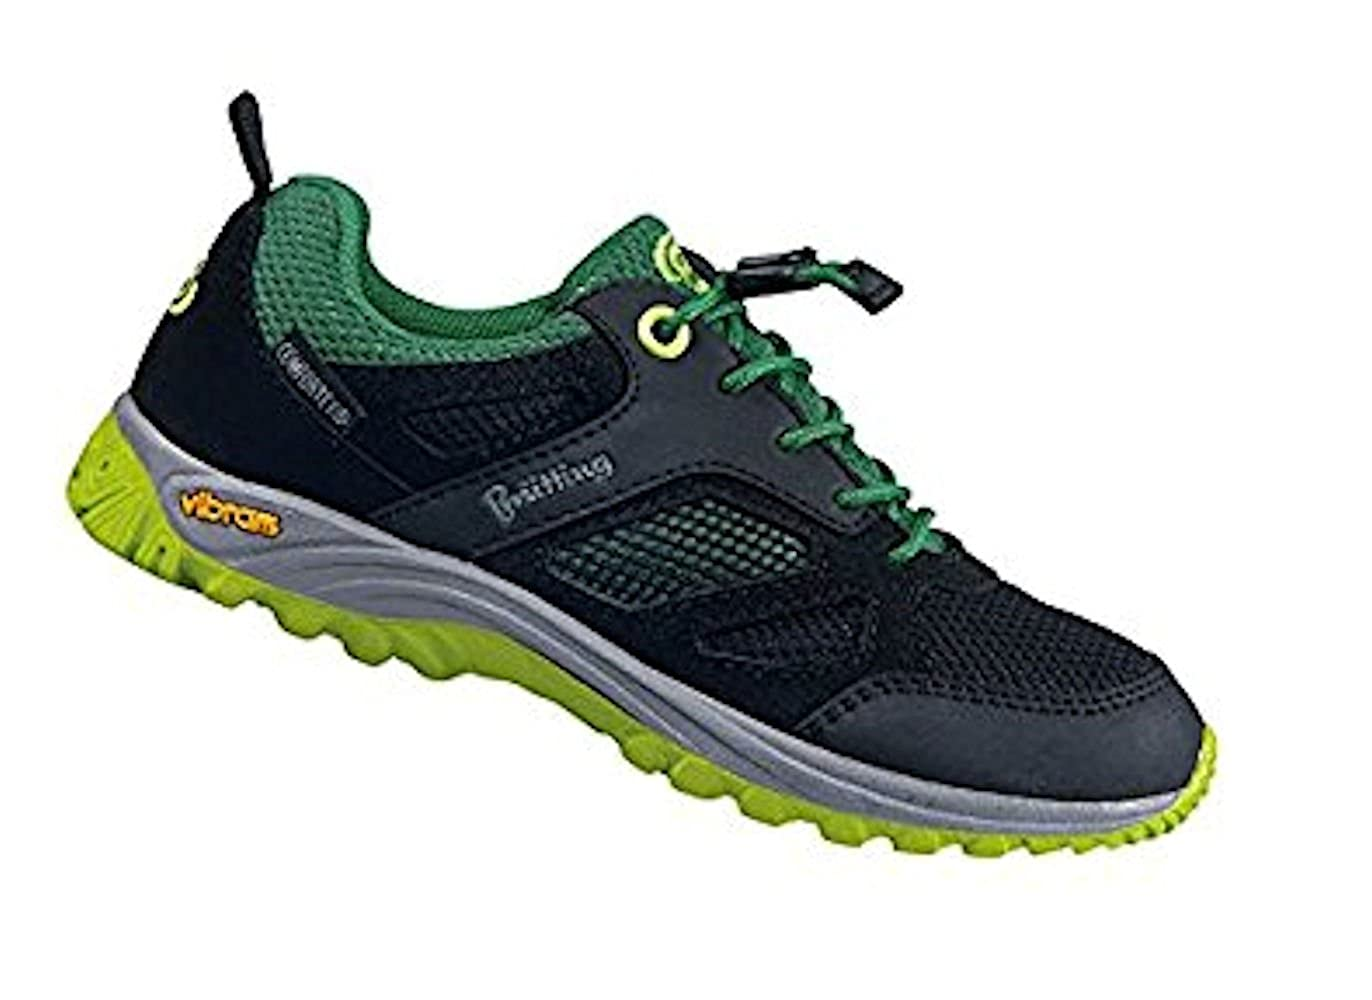 Bruetting Field Kinder Trekking-& Wanderschuh | Outdoorschuh